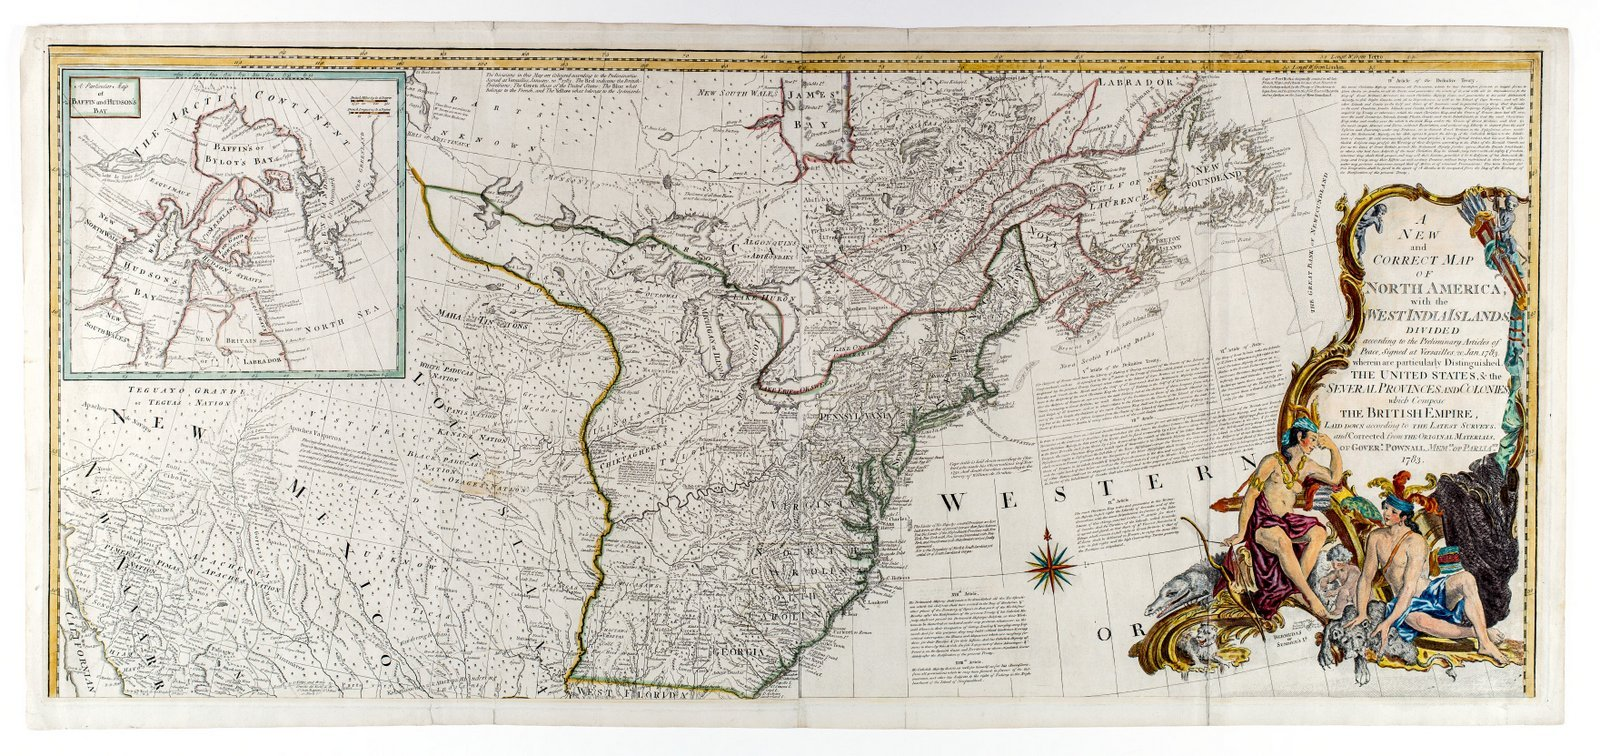 Historic Map | 1783 A new and correct map of North America, with the West India islands, divided according to the preliminary articles of peace, signed at Versailles, Jan. 1783 | Vintage Reproduction